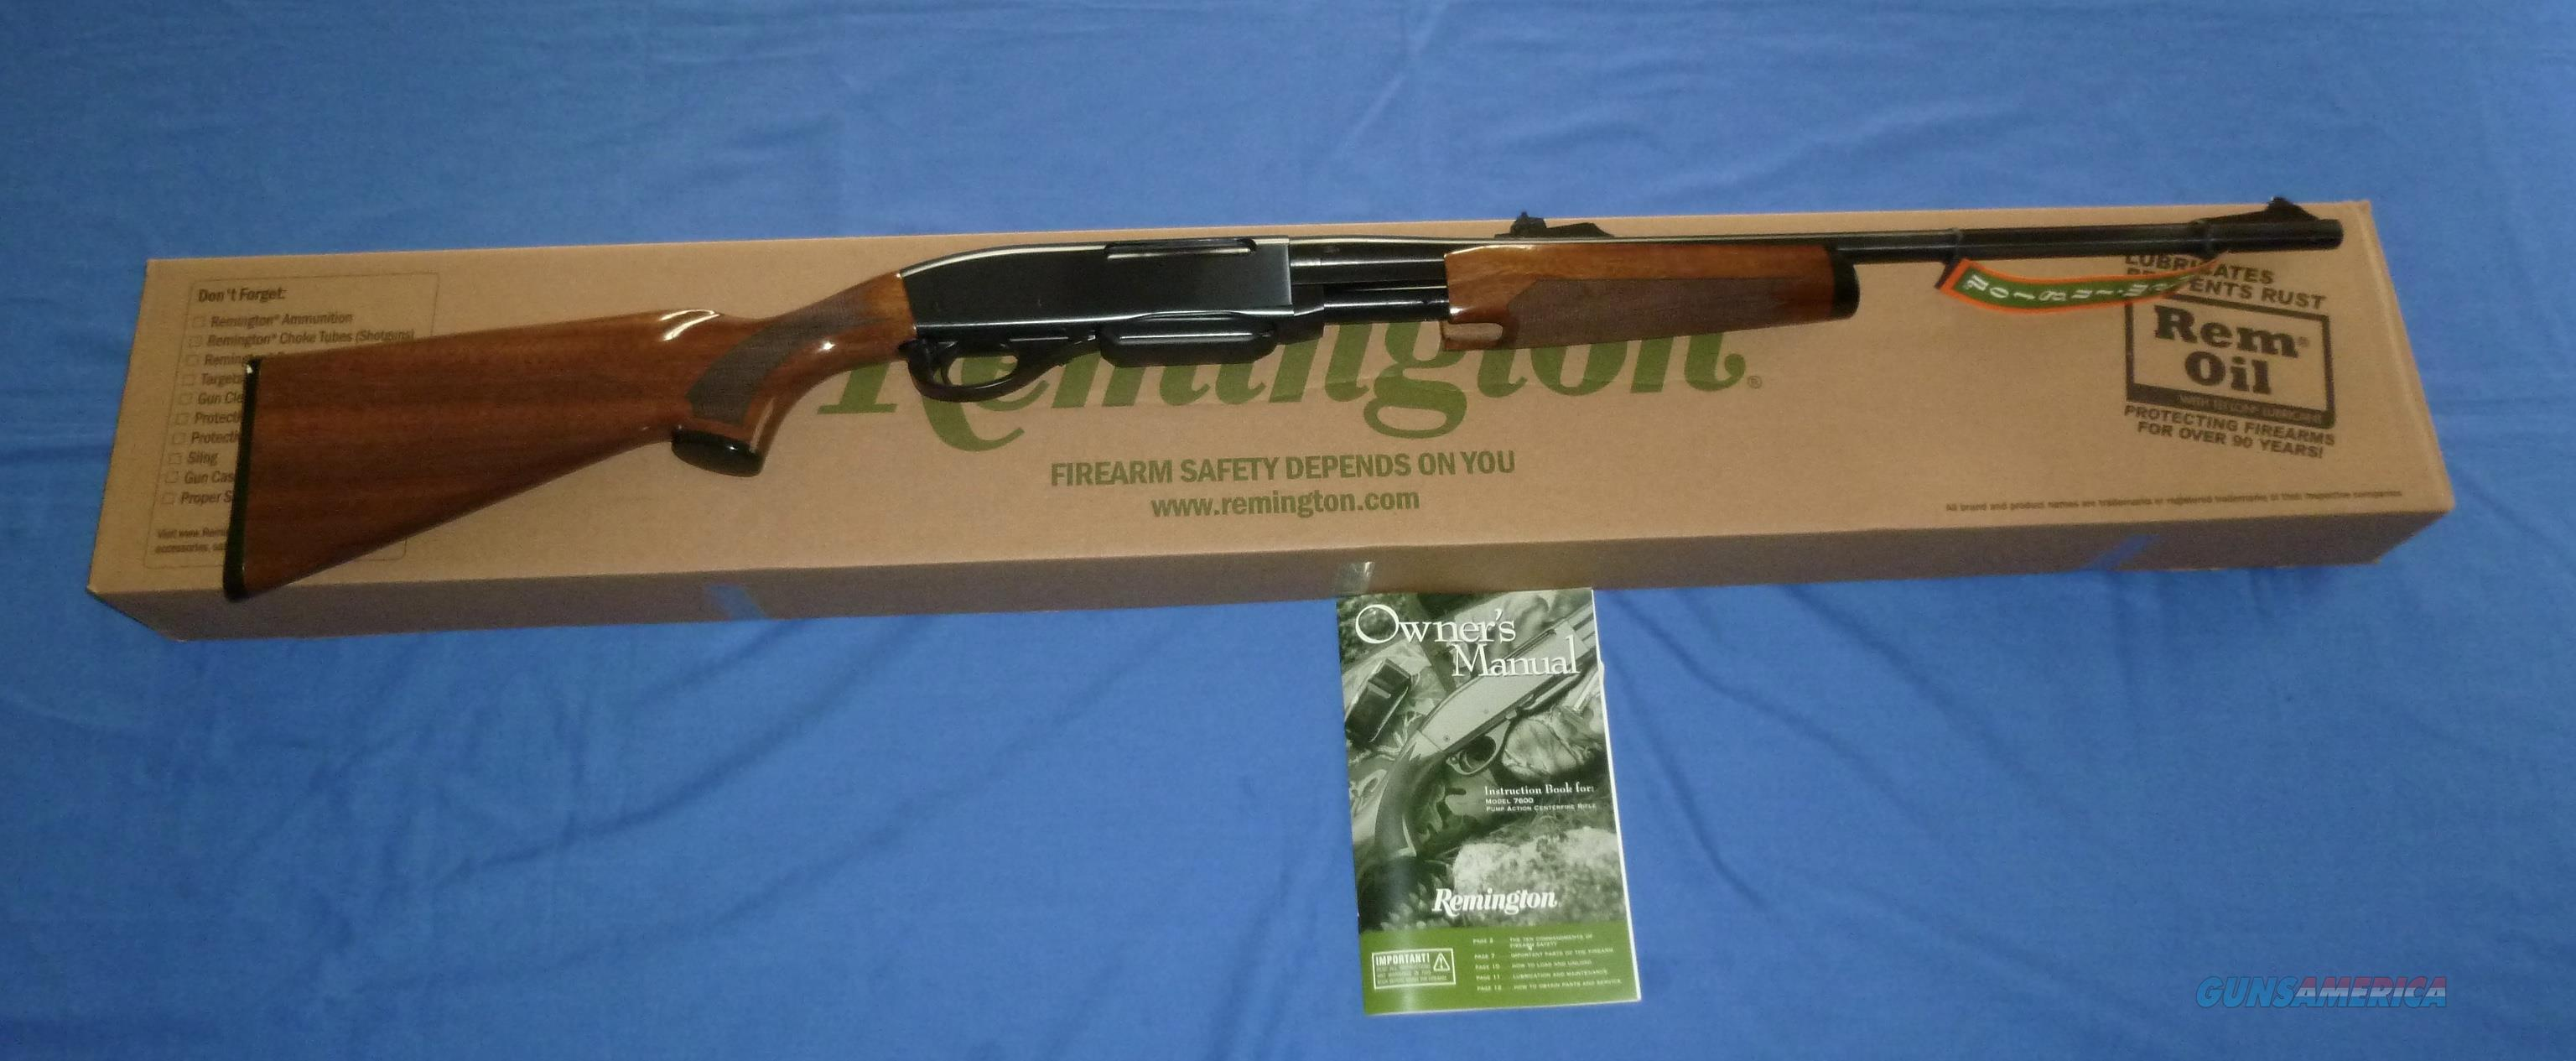 REMINGTON 7600 30-06 CAL. PUMP ACTION RIFLE HIG... for sale